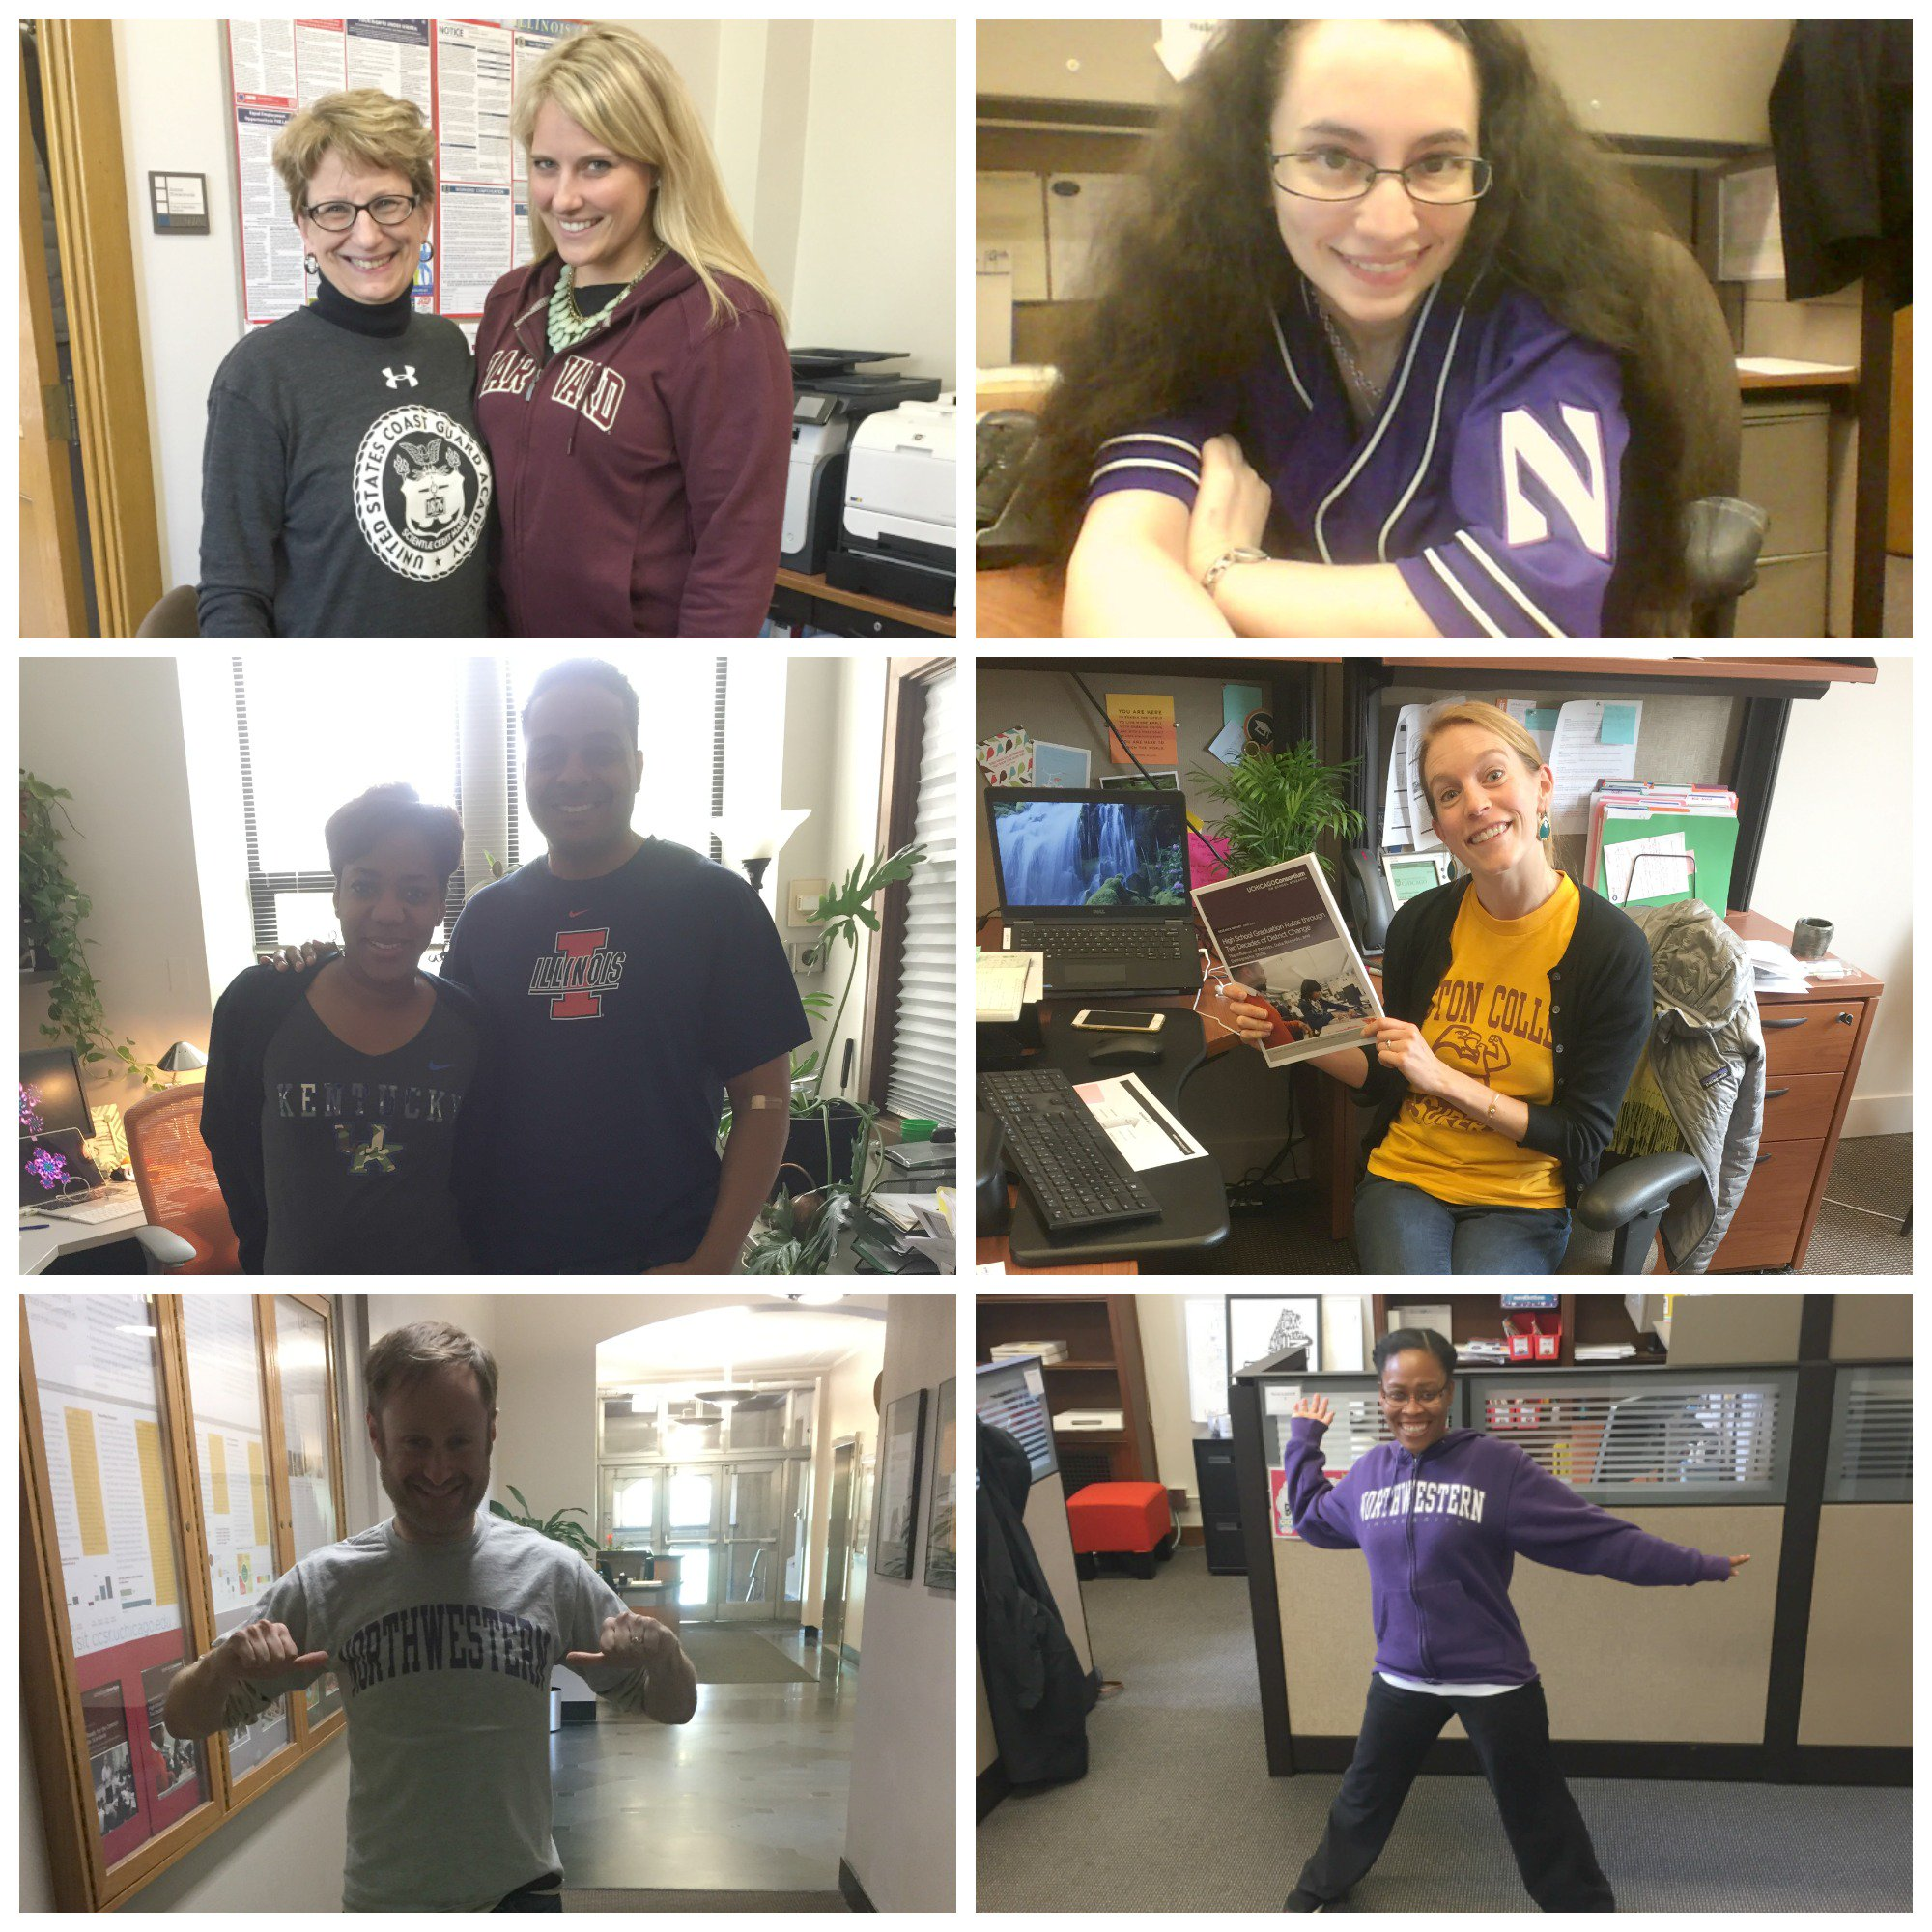 UEI staff sport college swag in support of students on #collegesigningday #toandthrough @reachhigher @BetterMakeRoom https://t.co/slIbuV7SNe